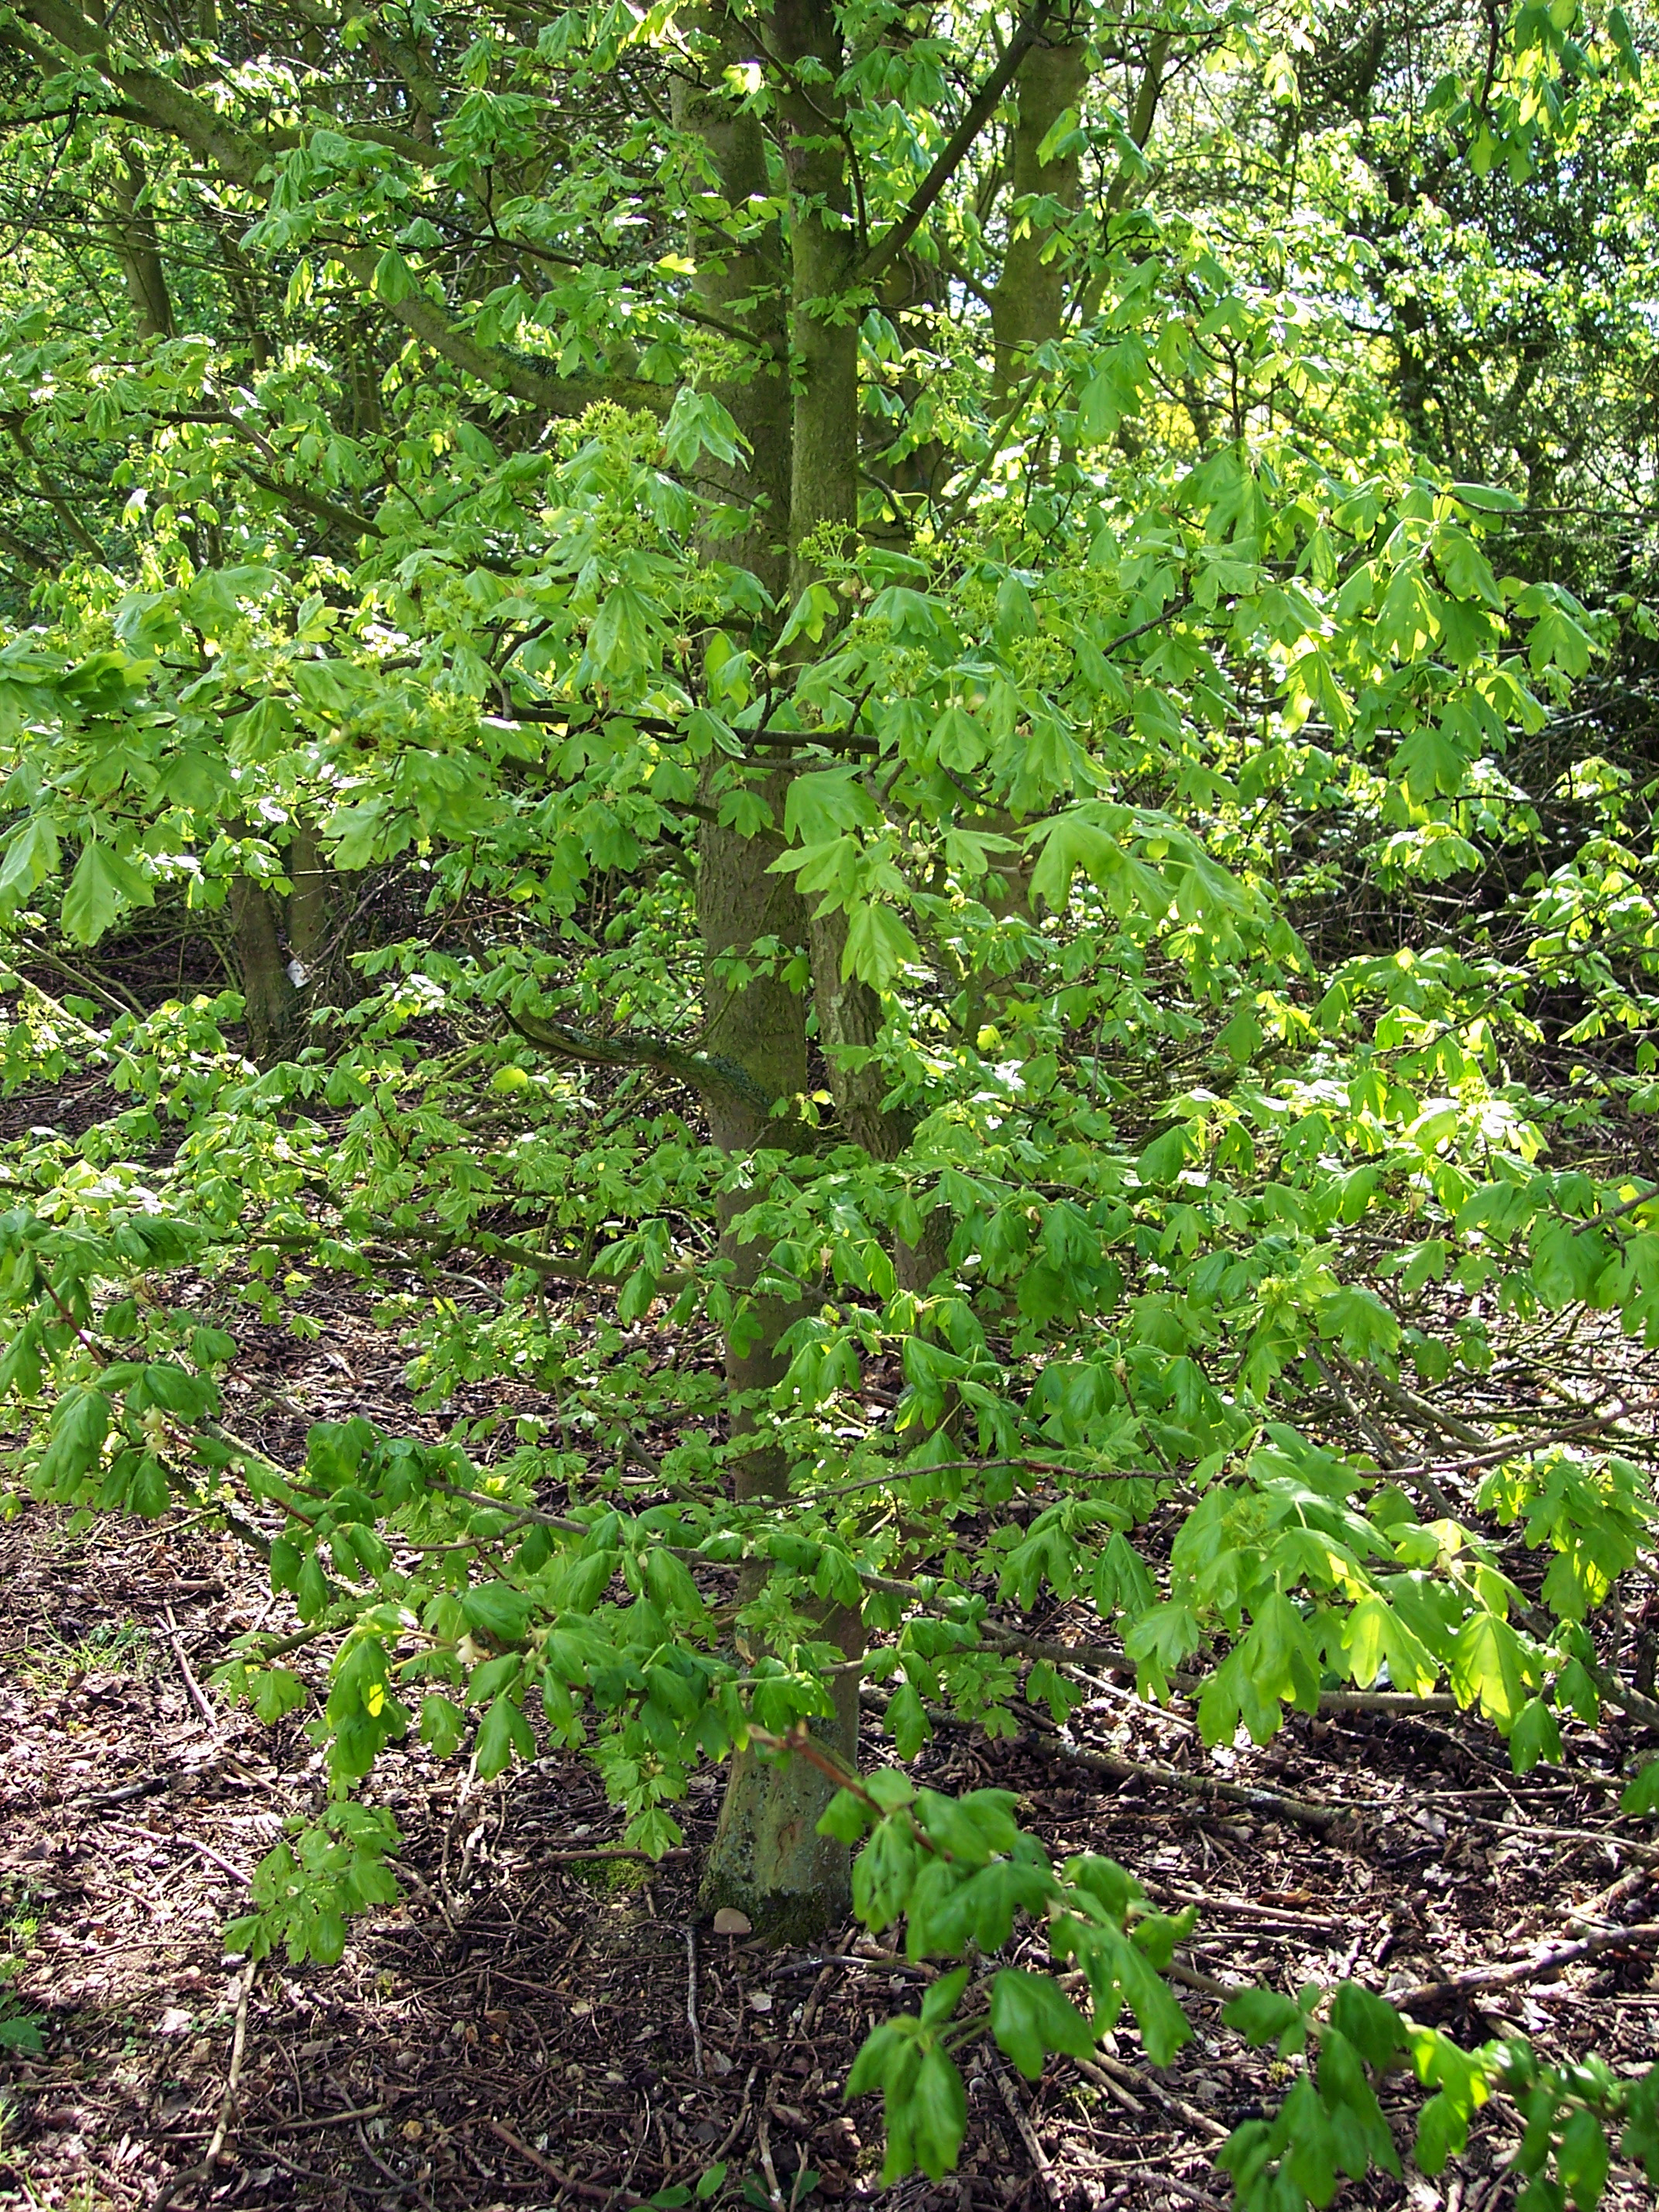 Field maple is a small, deciduous tree which can be up to 25m tall, but often reaches only 15m. It has fissured often corky bark. It prefers lime-rich soils in woodland, often as an understory to the oak, or in scrub and hedges. Its five petalled flowers are small and green. They are produced in upr...